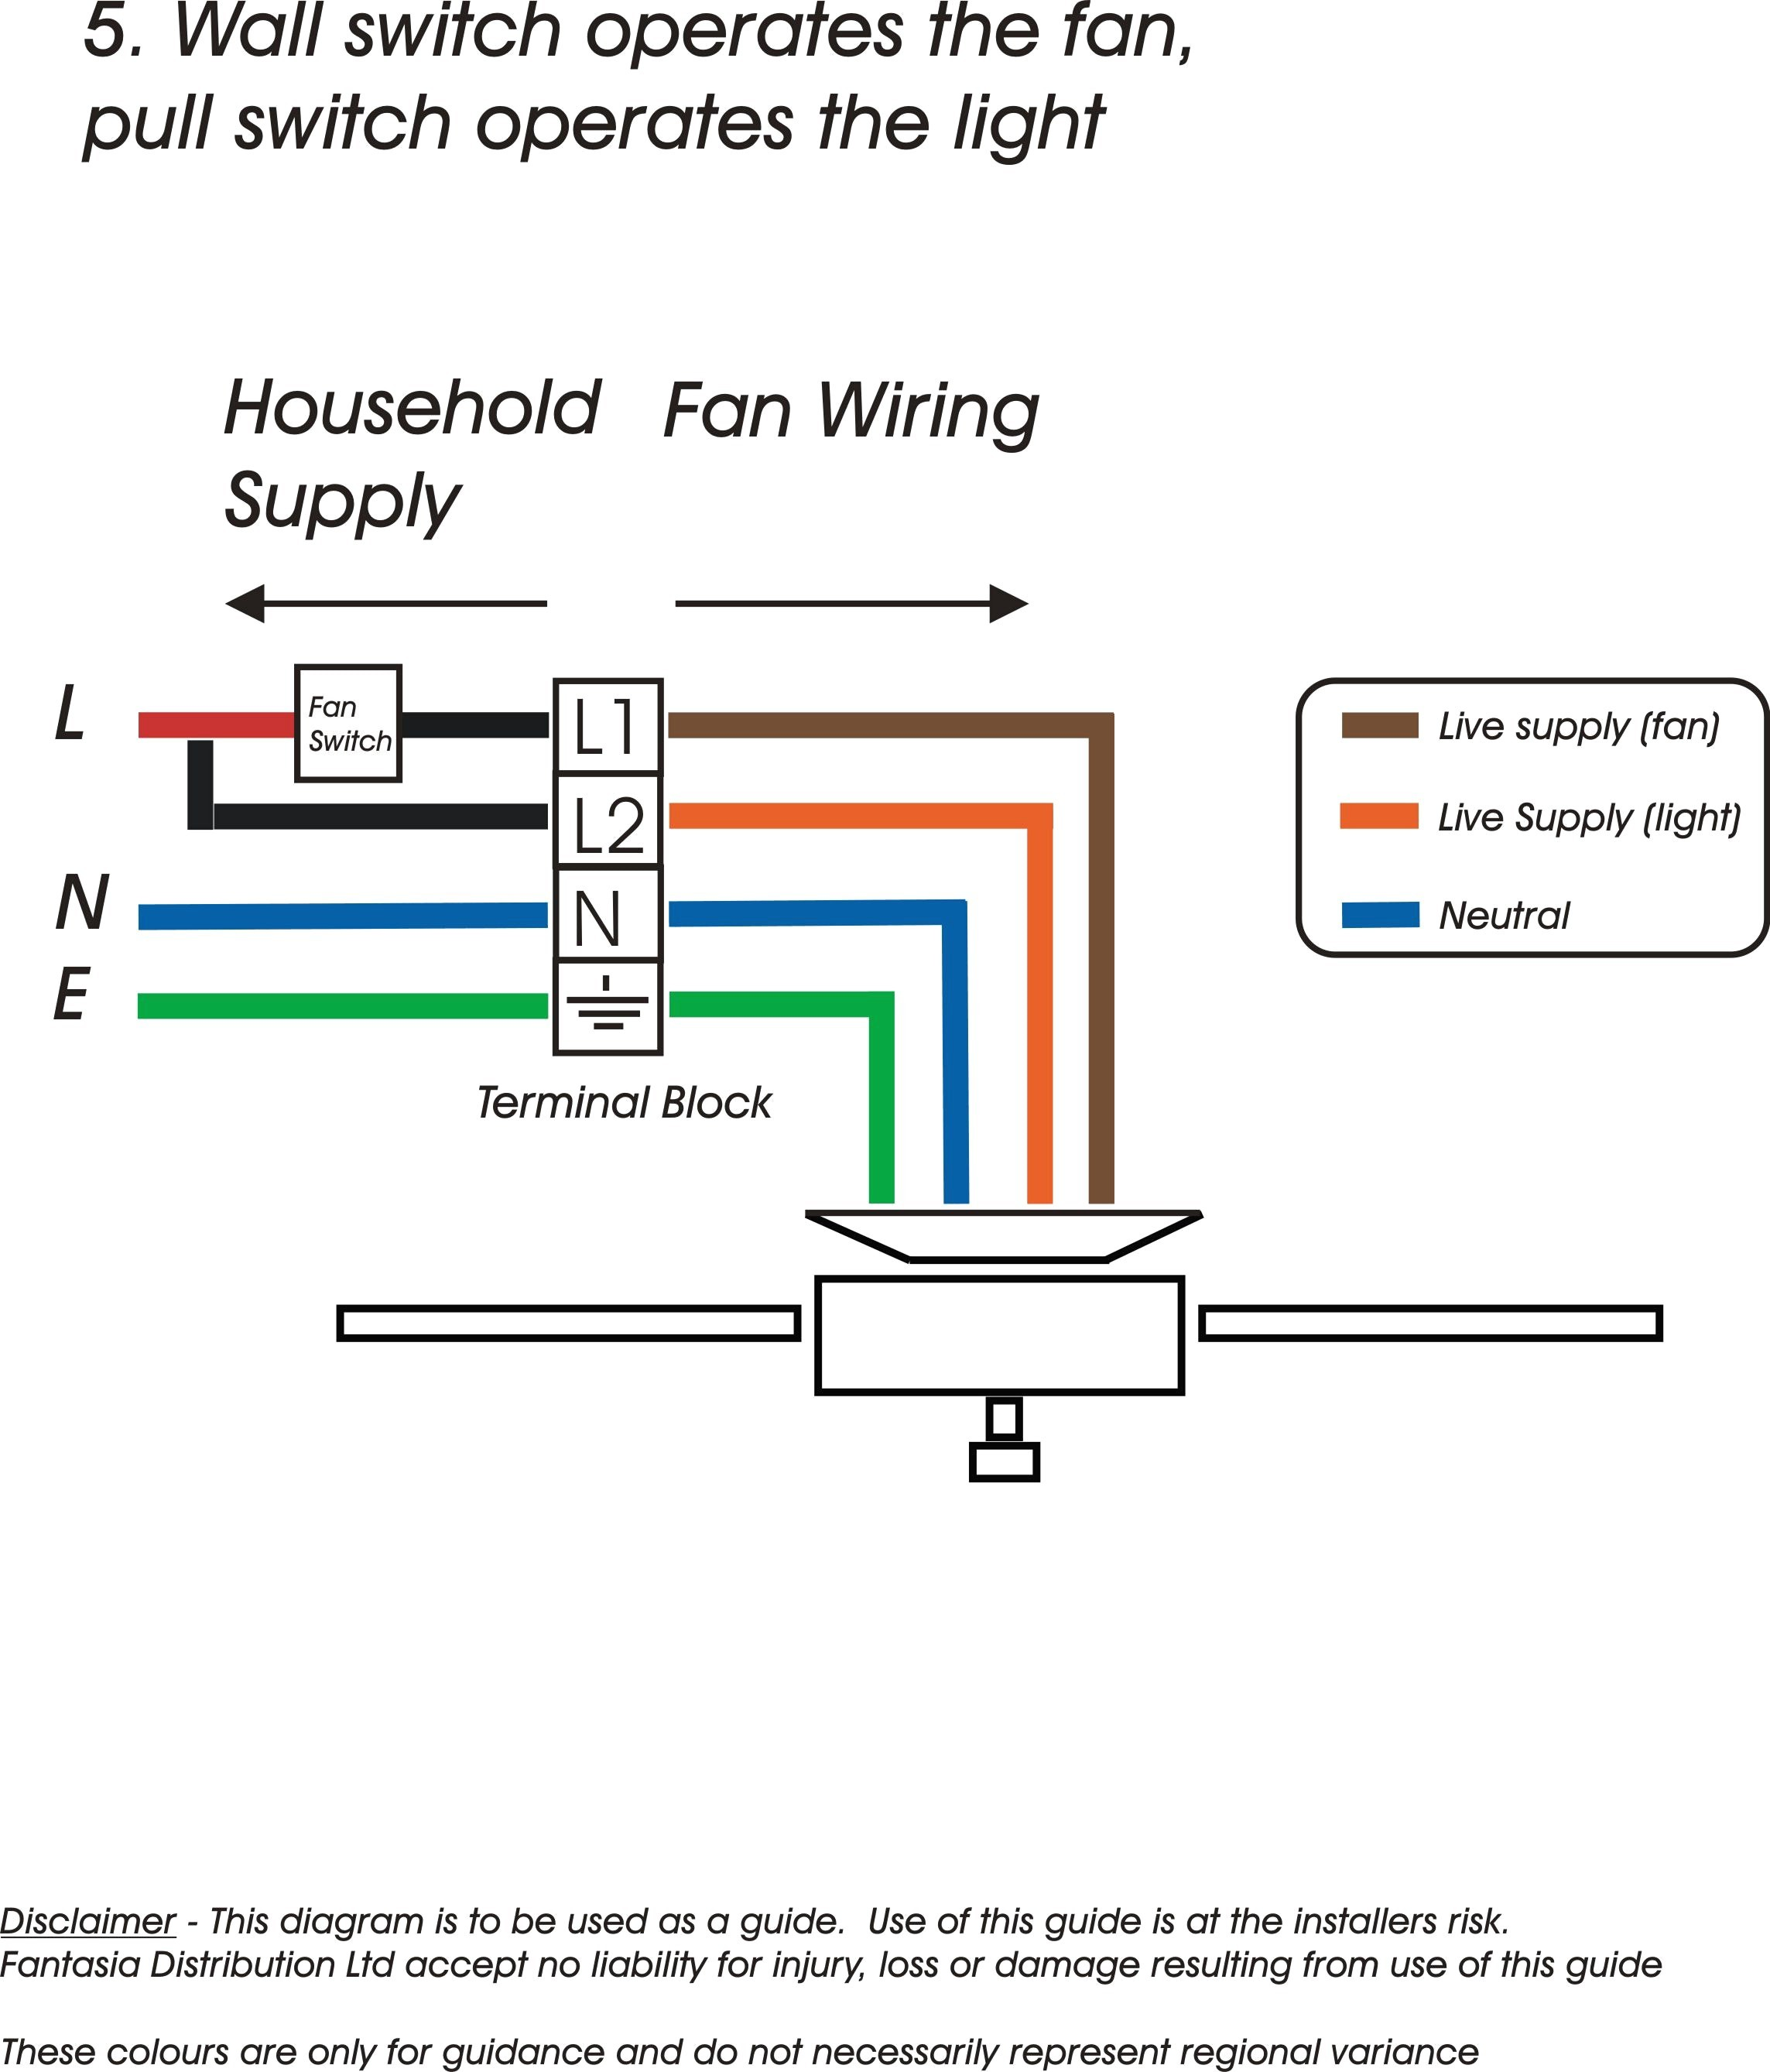 Lutron Dimmer 3 Way Wire Diagram Wiring A Leviton 3 Way Dimmer Switch Wiring solutions Of Lutron Dimmer 3 Way Wire Diagram